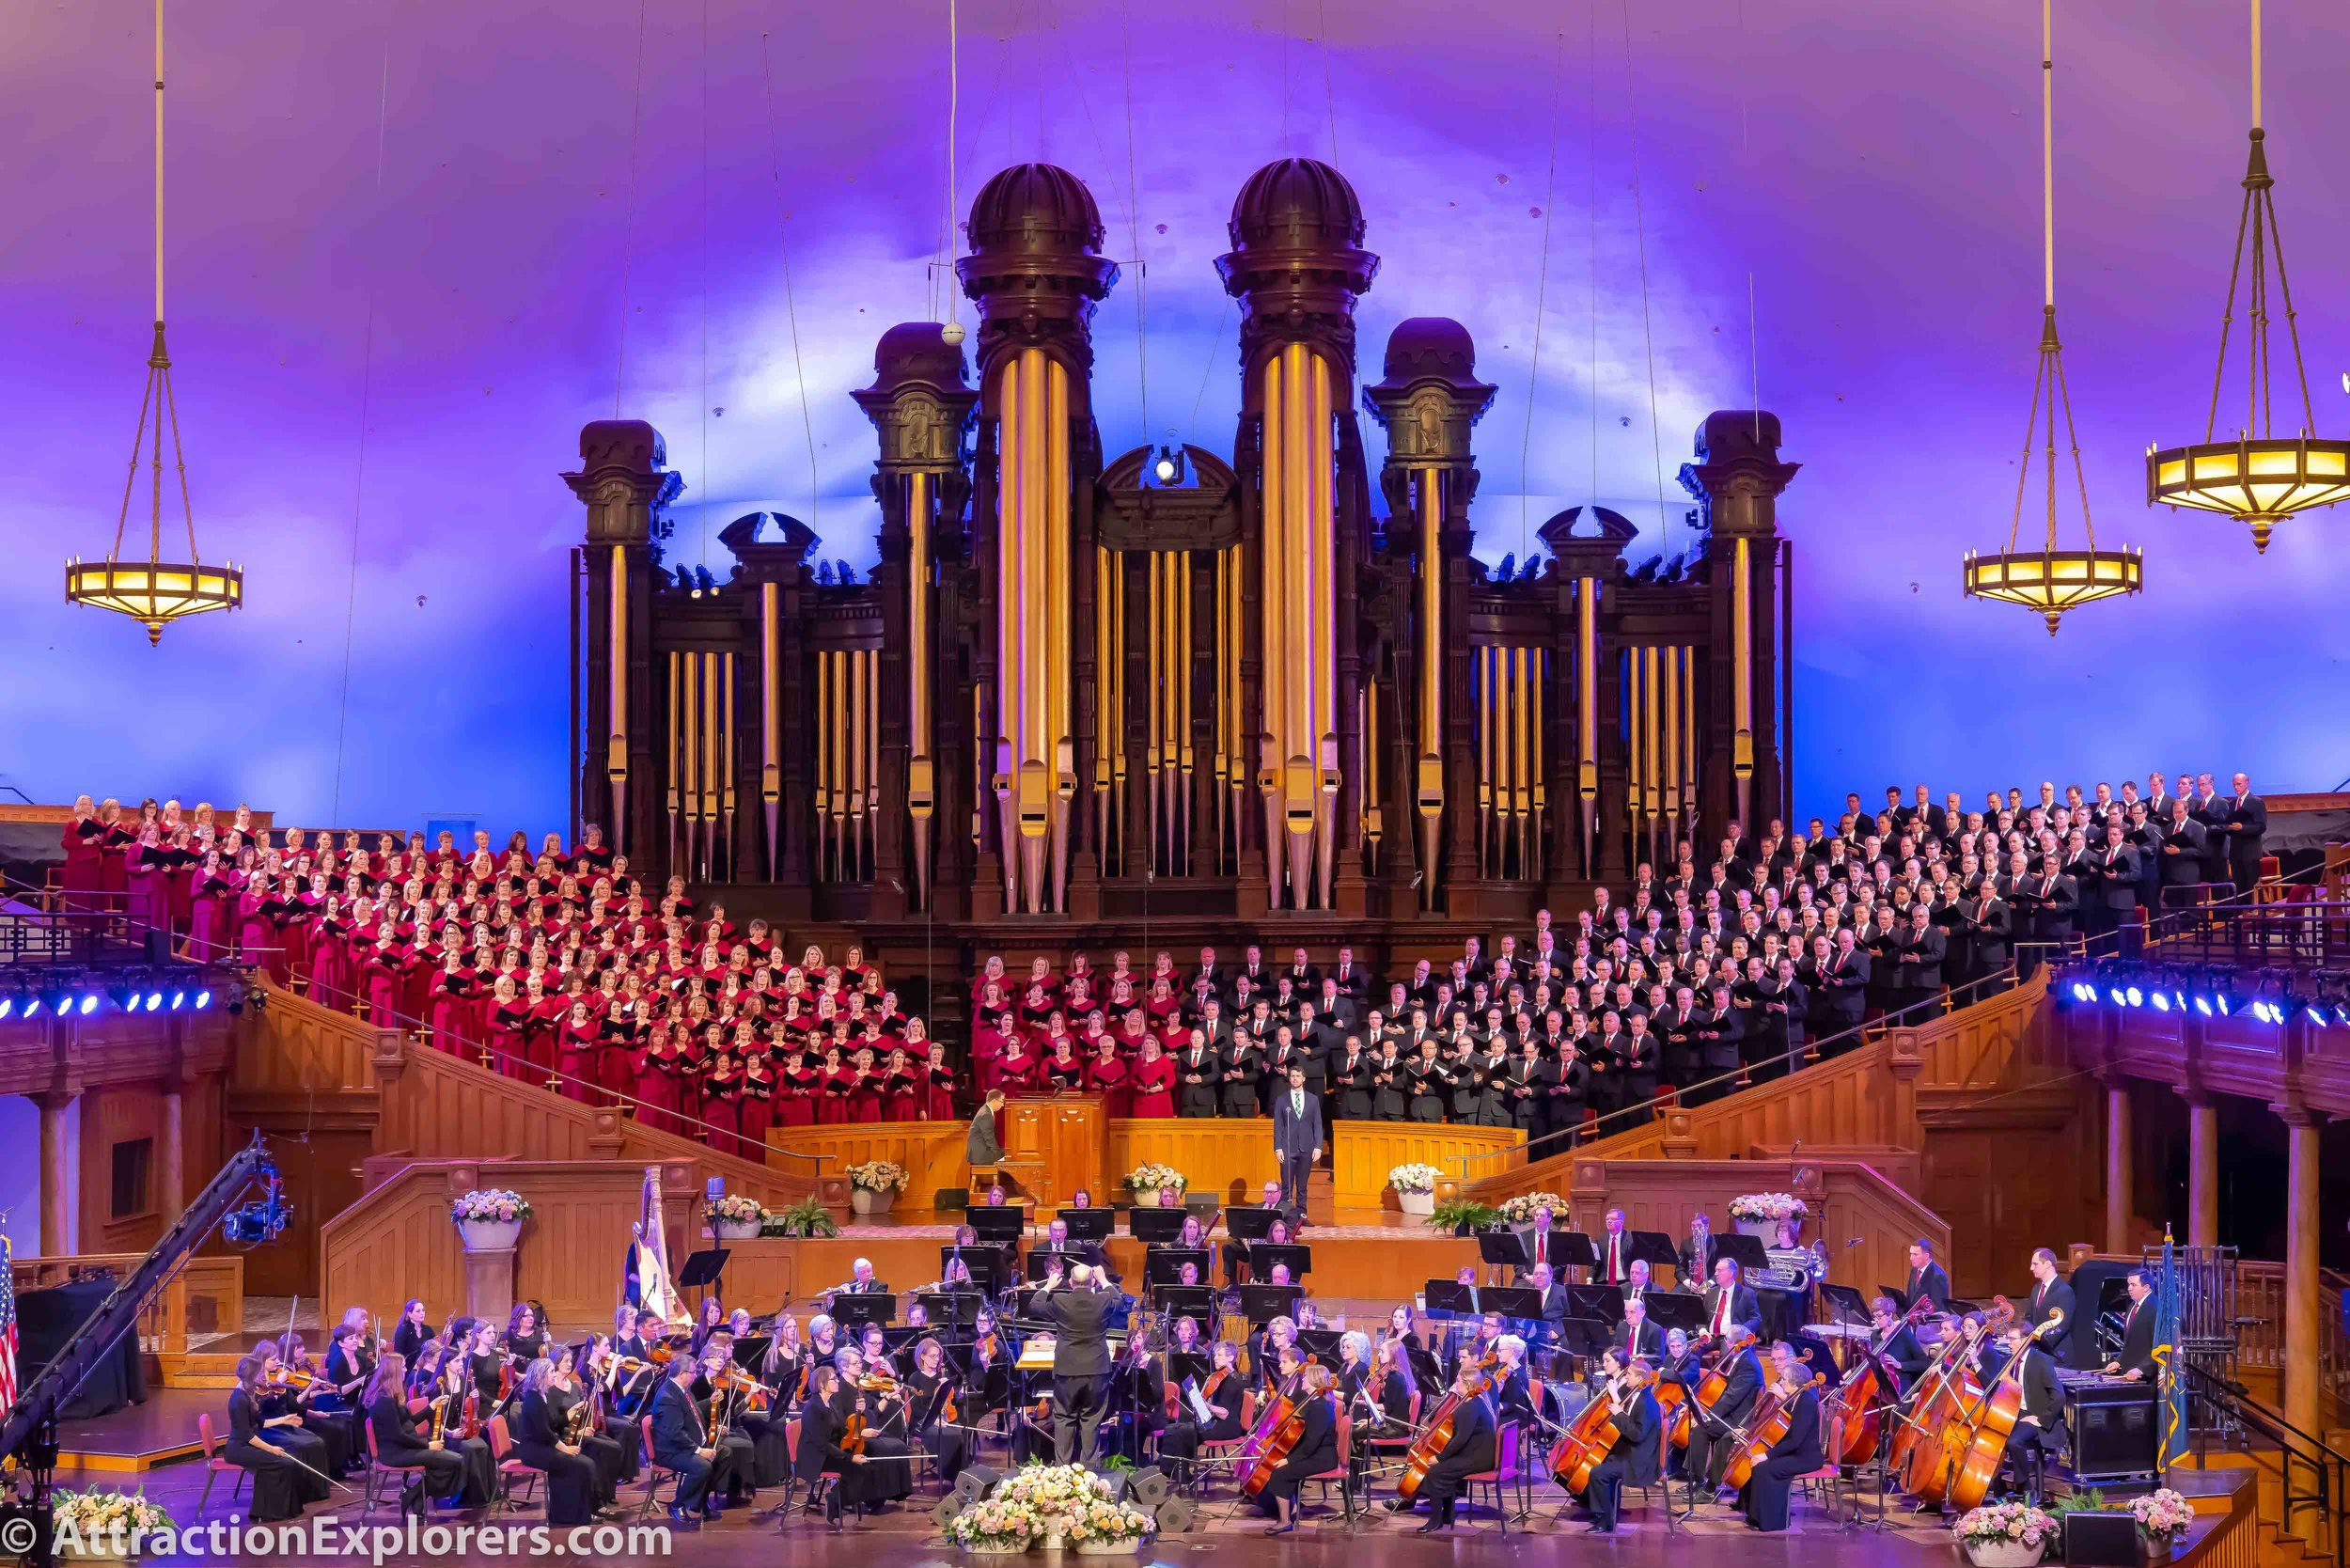 Mormon Tabernacle Choir and Salt Lake City Tour